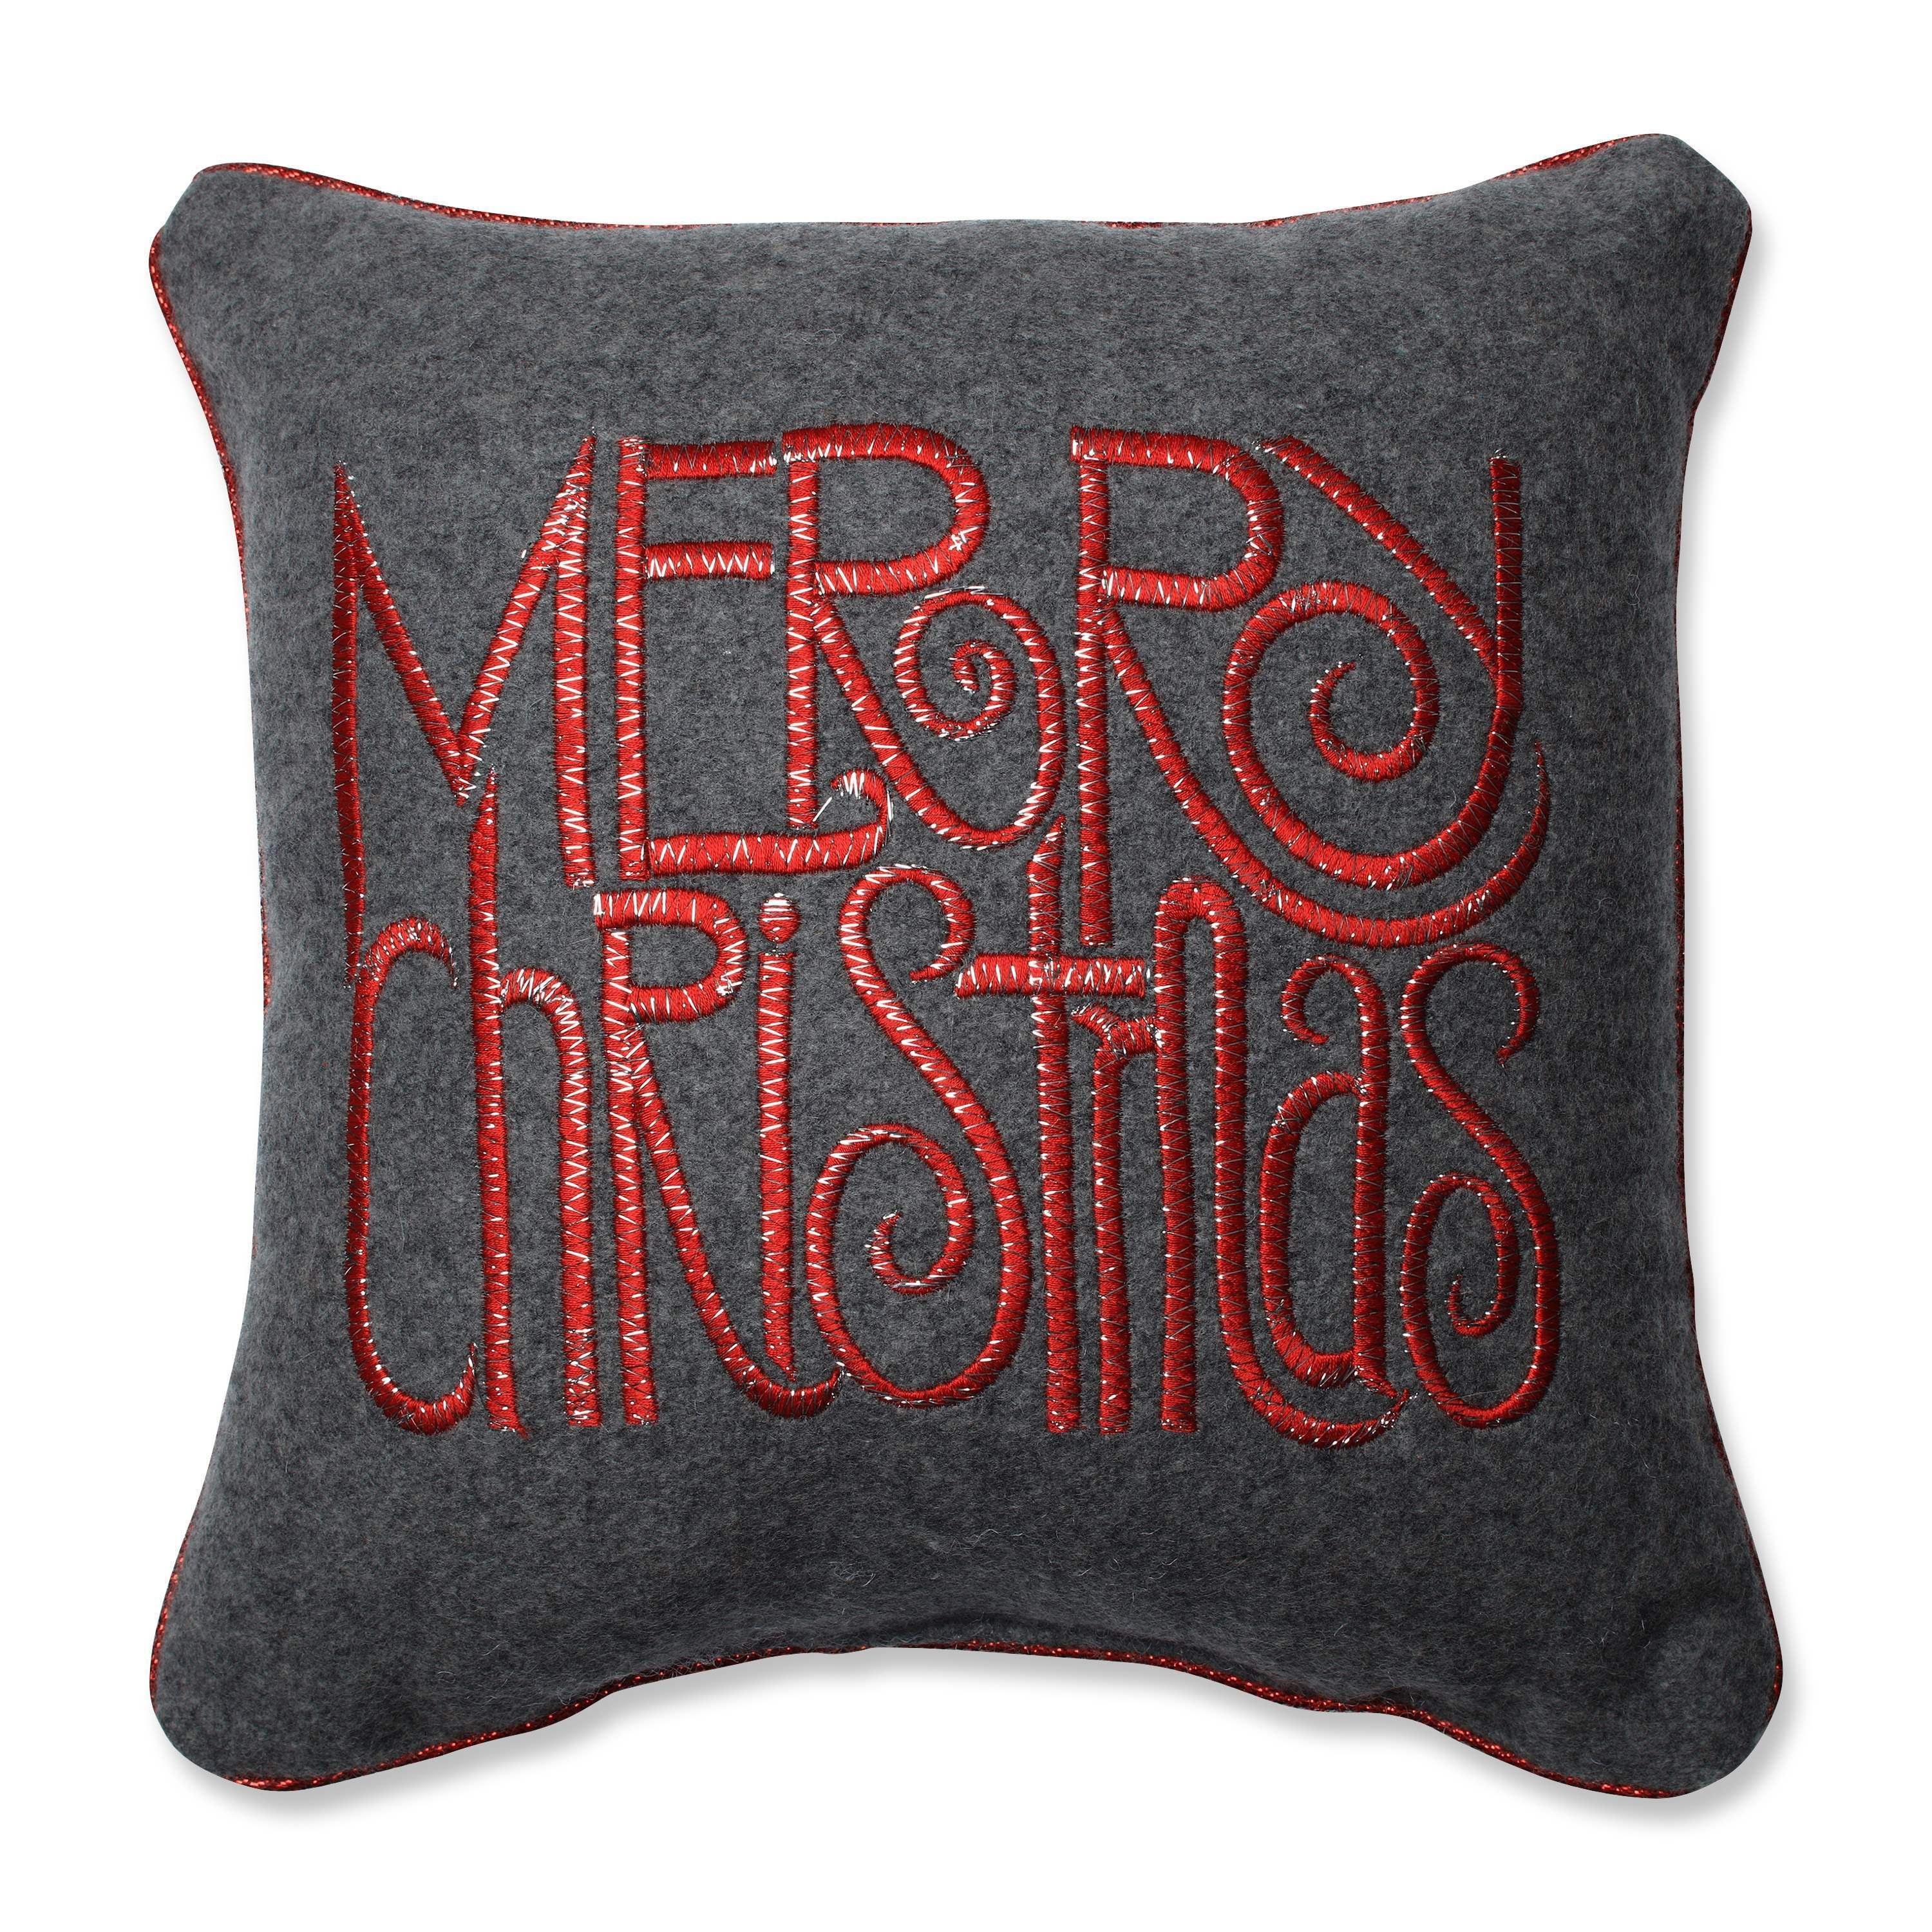 Pillow Perfect Merry Christmas Words Grey-Red 18.18-inch Throw ...